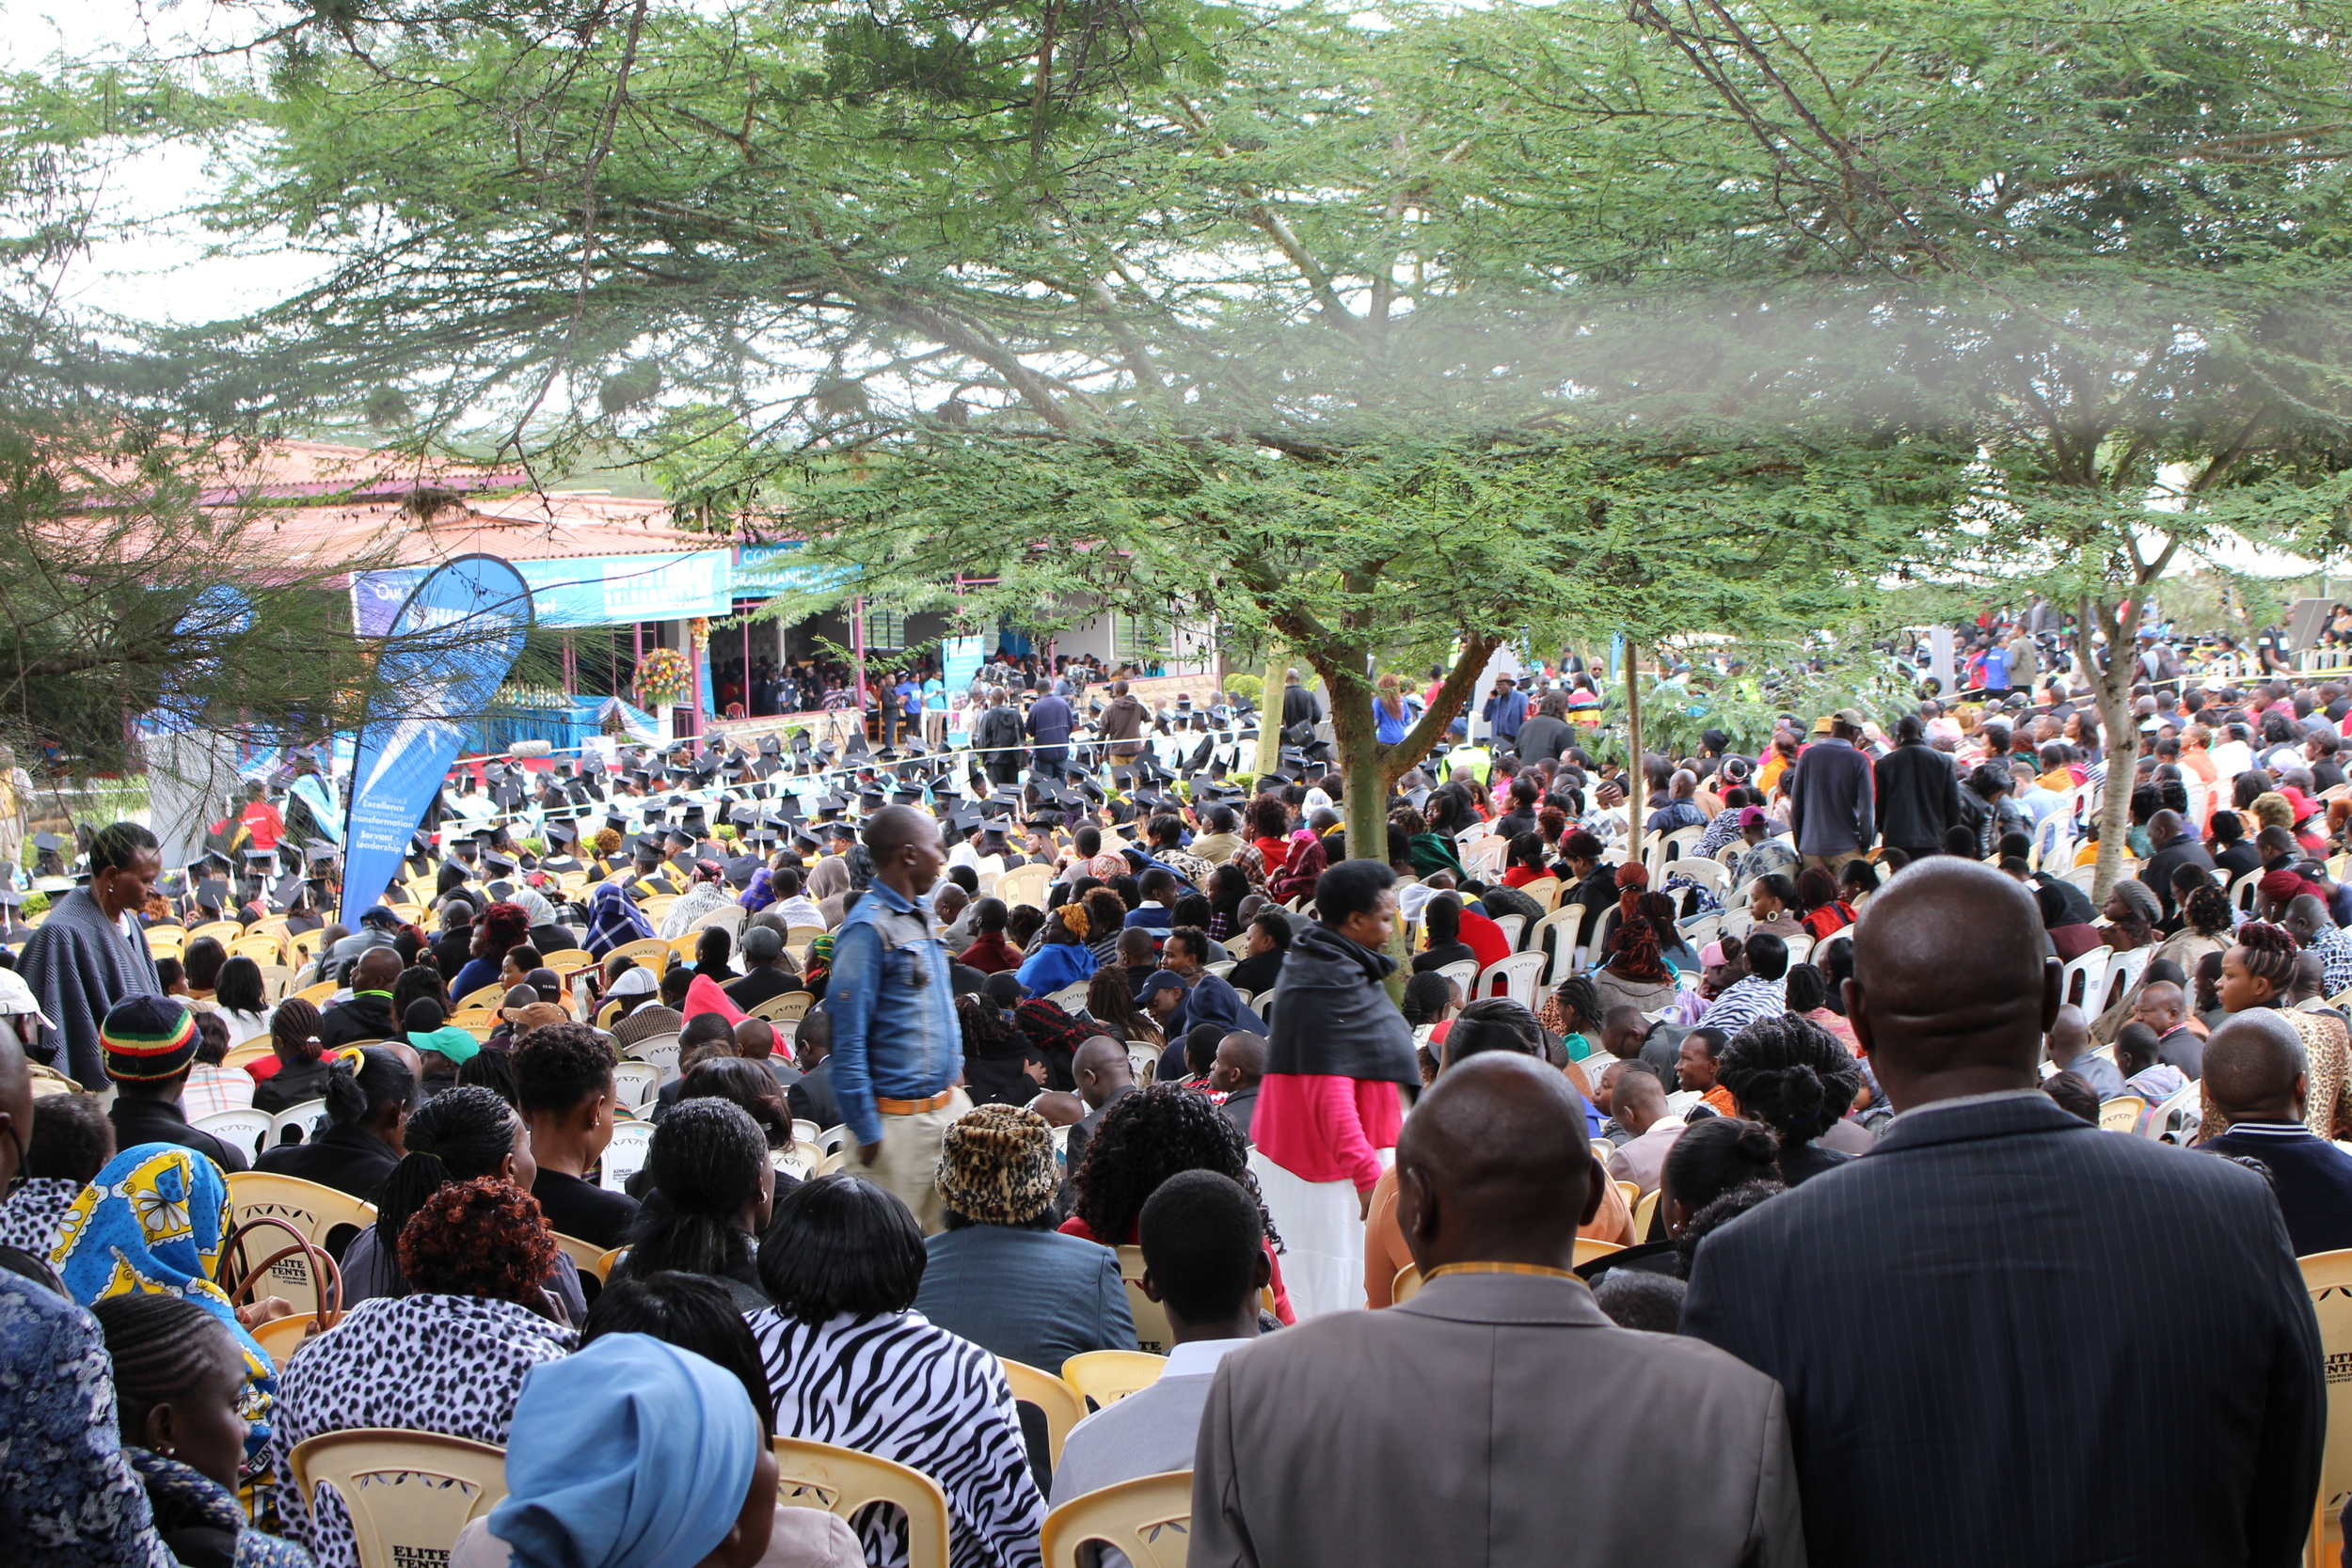 We attended the 2016 Daystar graduation ceremony where approximately 850 students graduated. The scope of the event was huge, with an estimated 10,000 people attending. It was beautiful to see whole villages celebrating the hard work and accomplishments of their graduate.